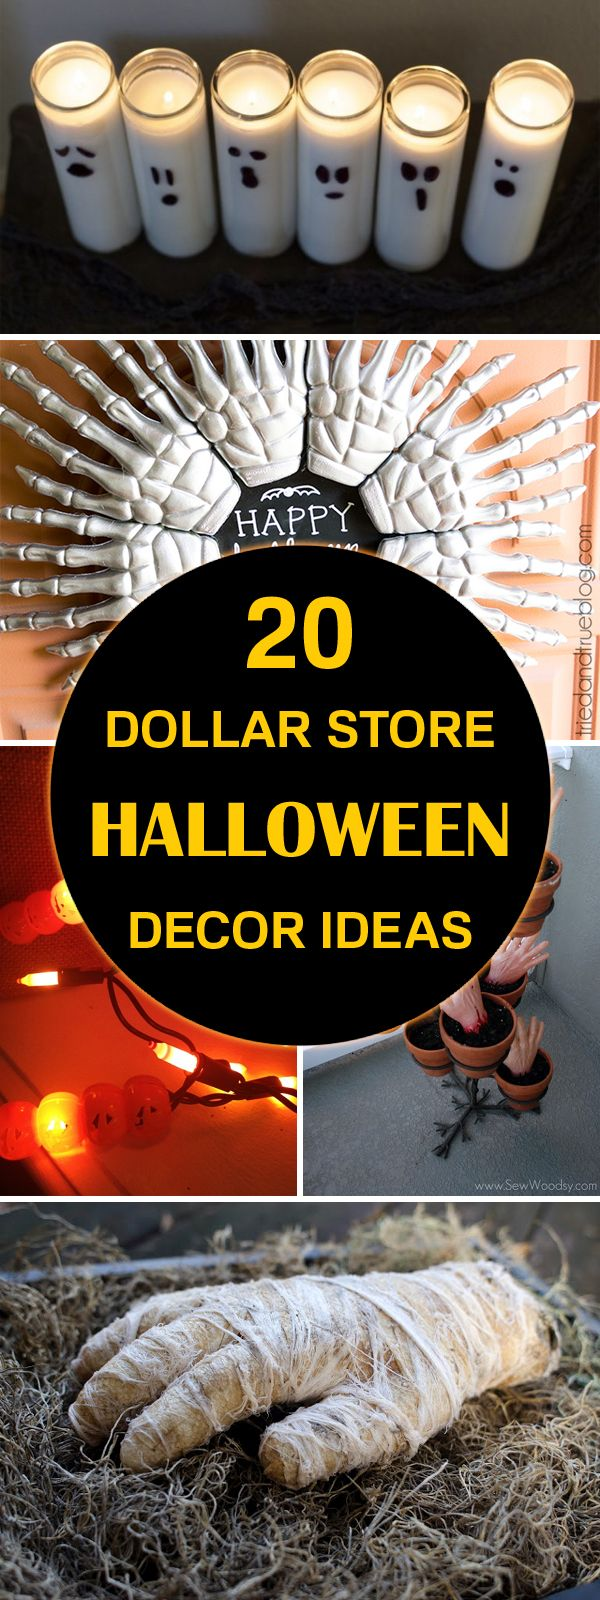 20 dollar store halloween decor ideas - Cheap Halloween Decor Ideas